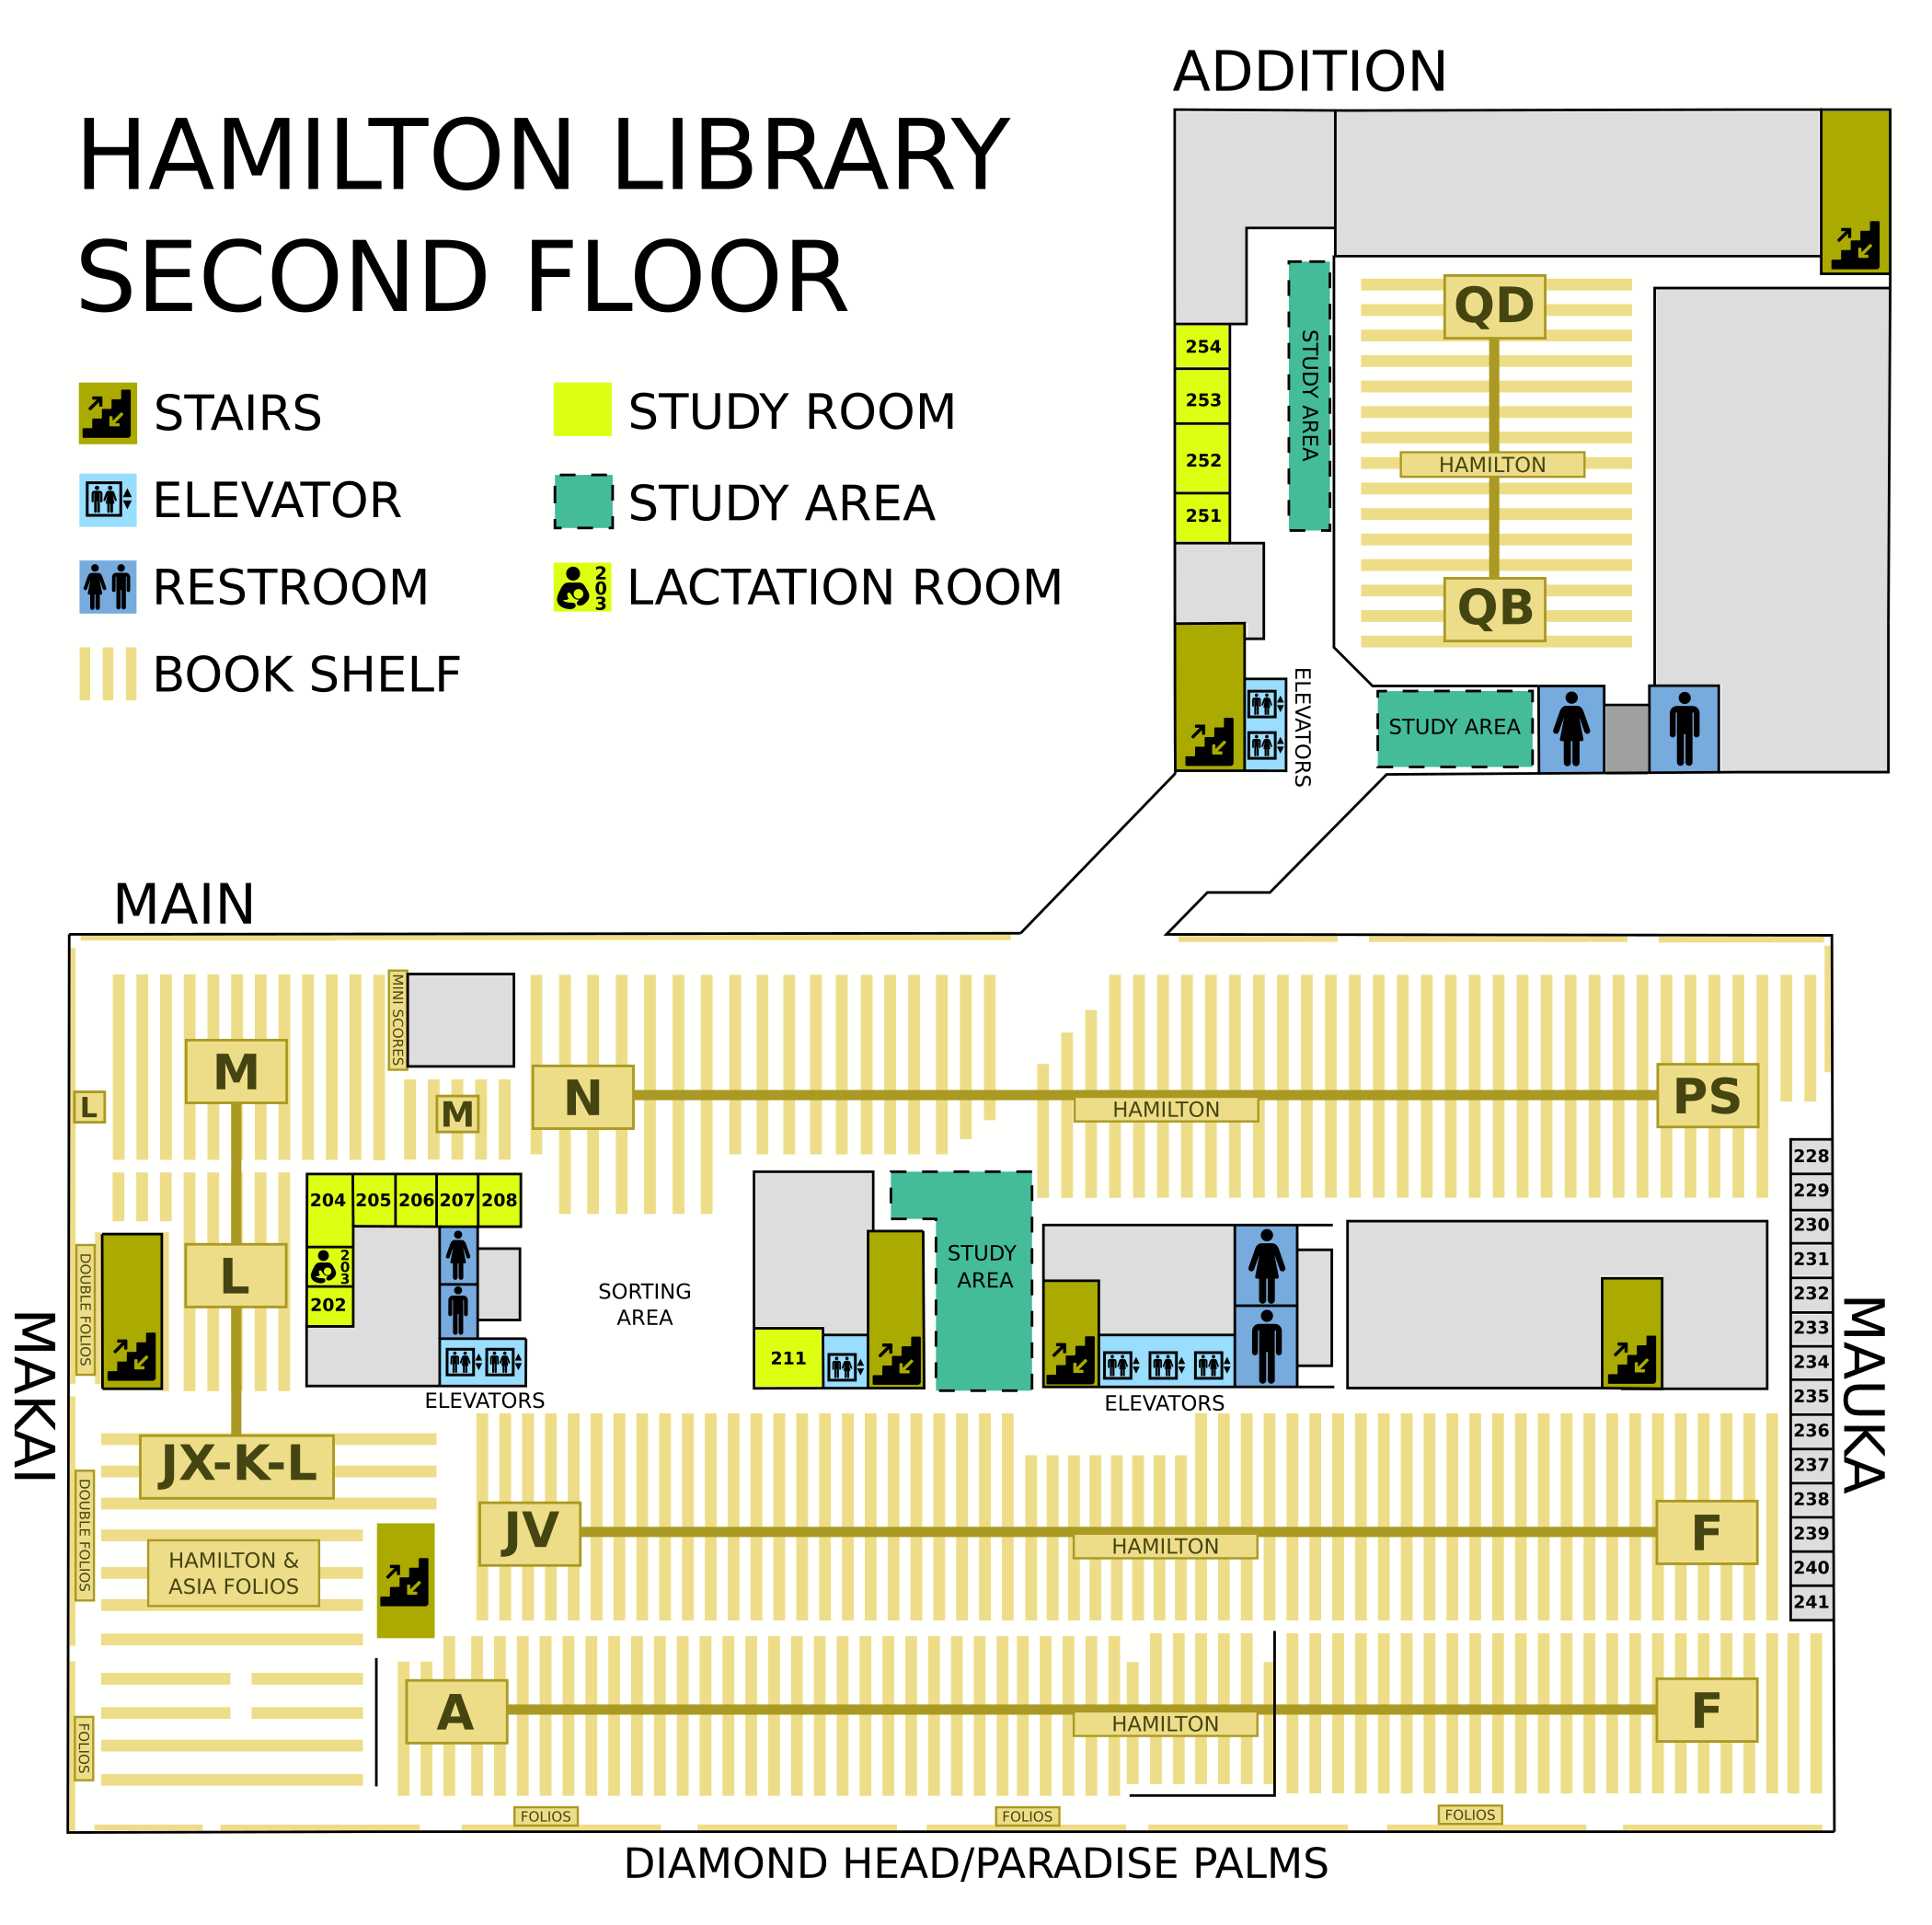 Hamilton second floor map